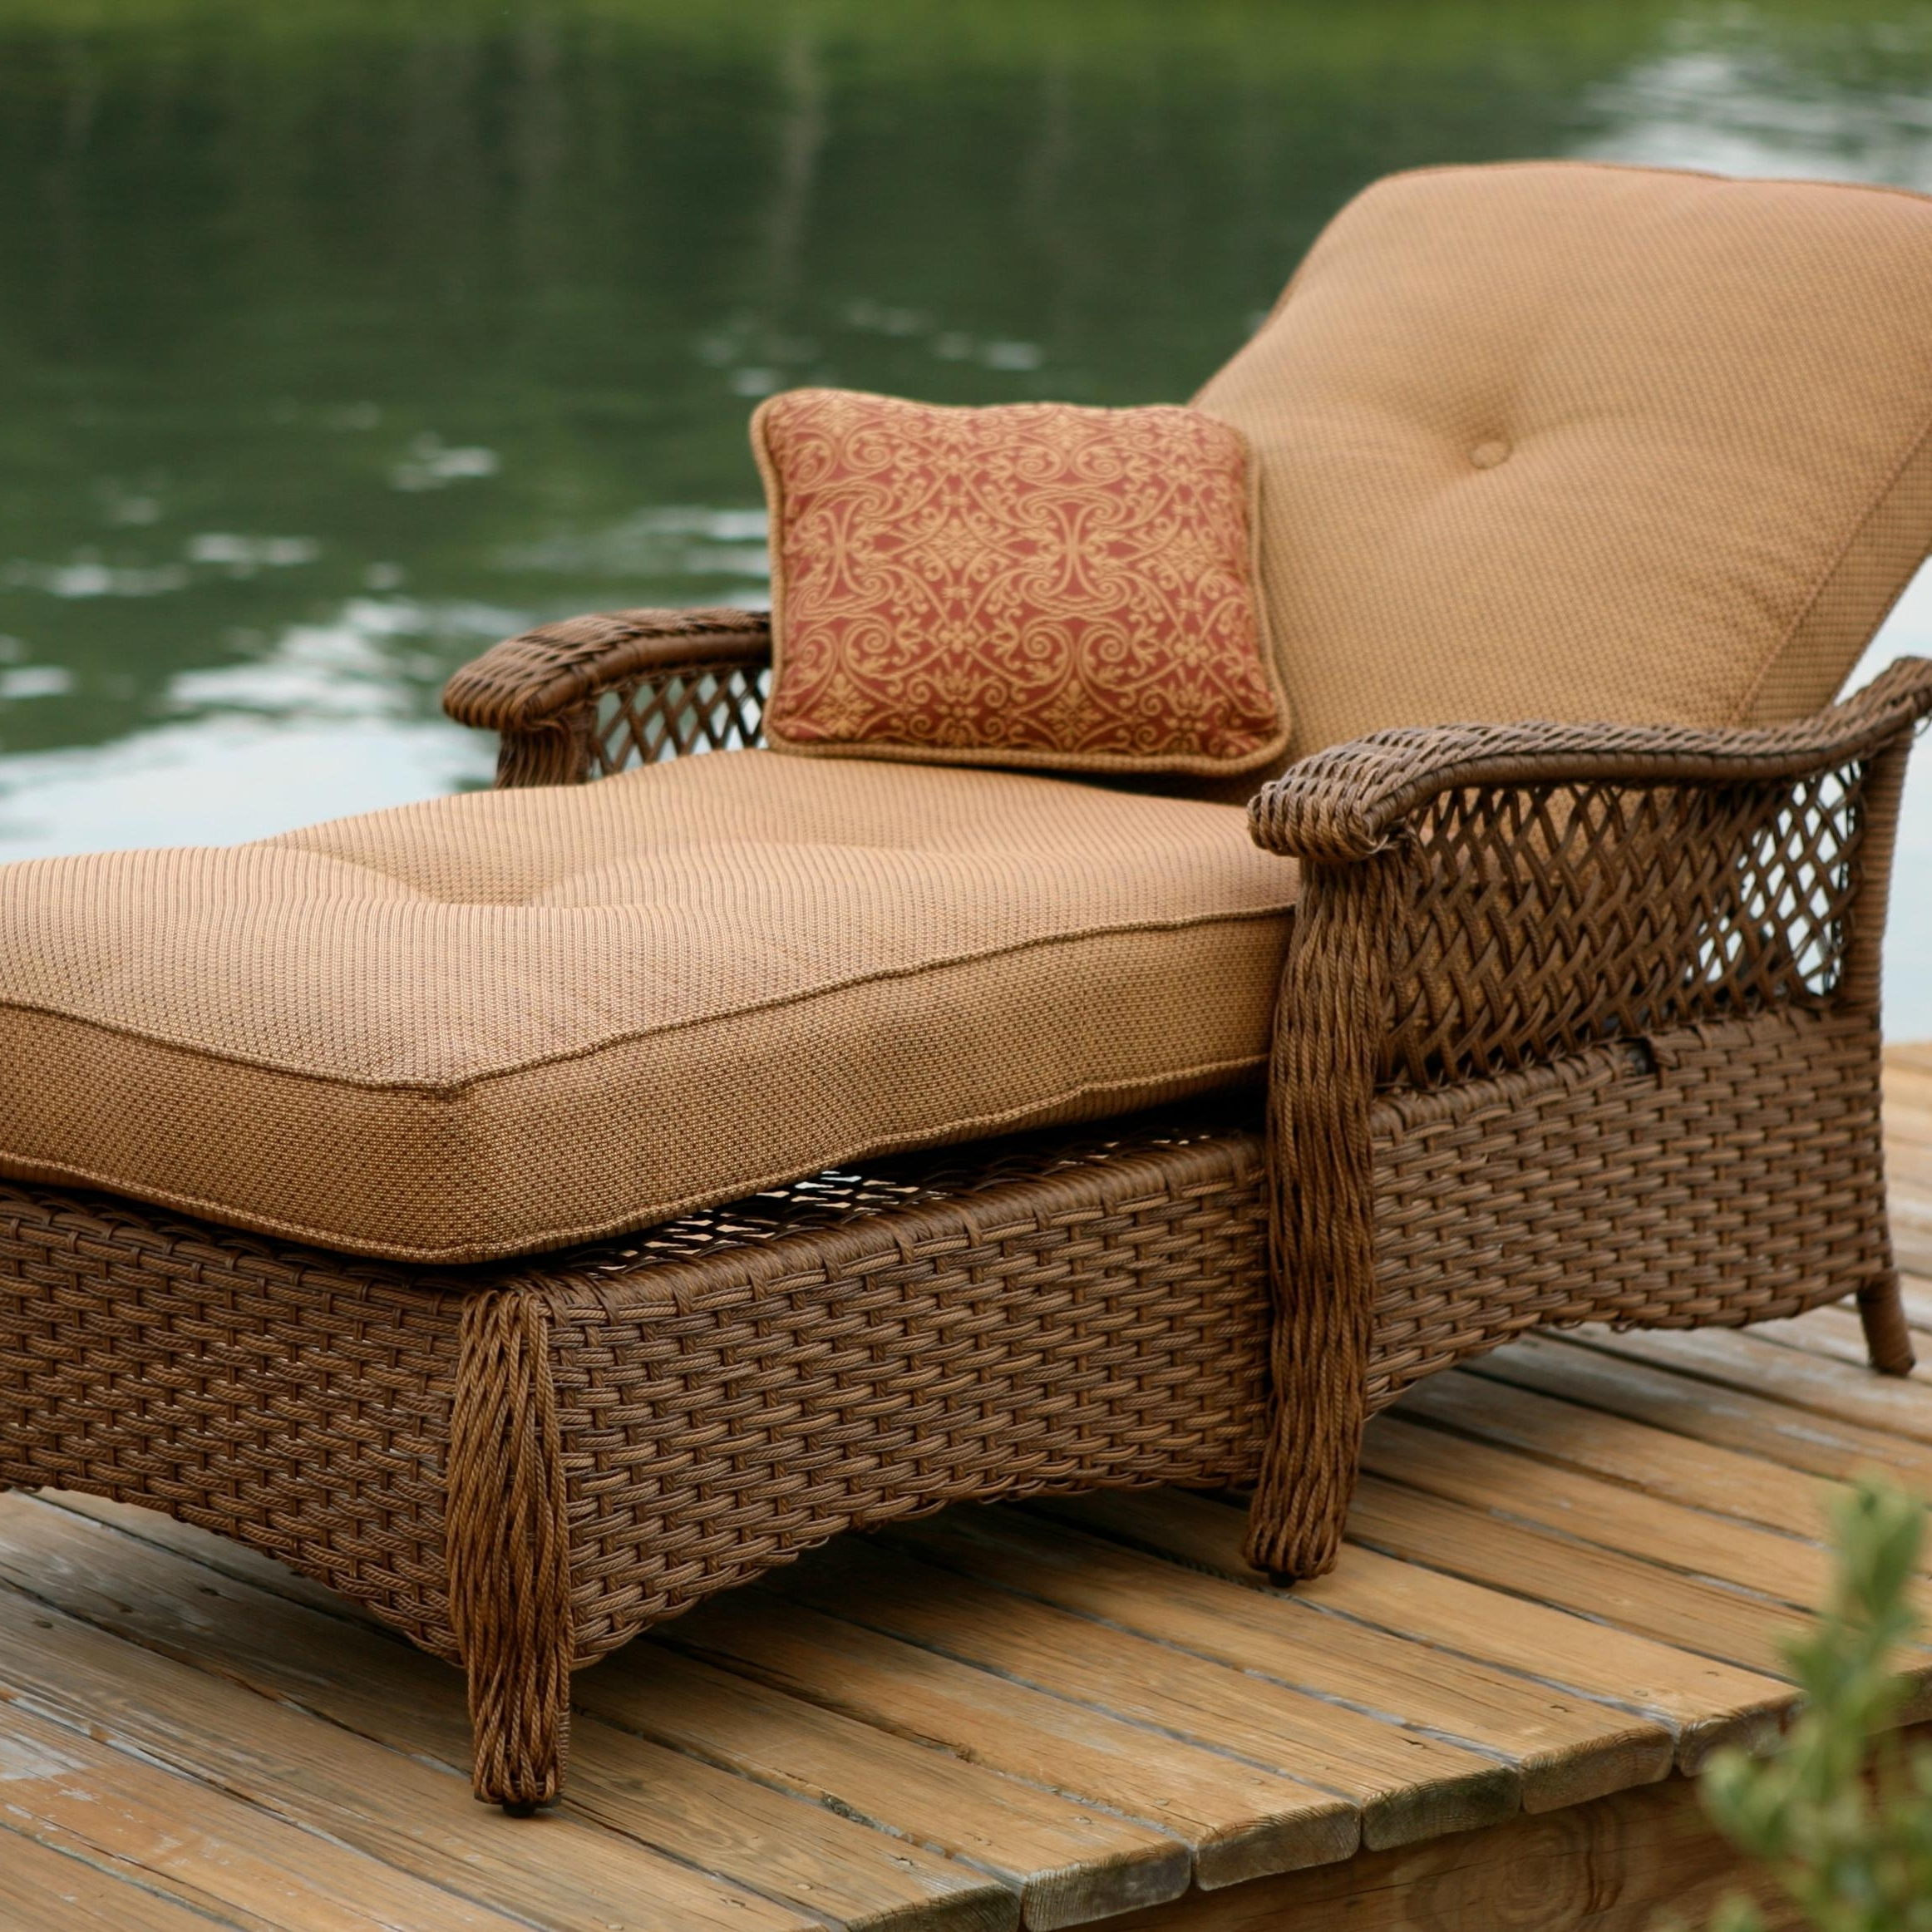 Well Liked Agio Veranda–Agio Outdoor Tan Woven Chaise Lounge Chair With Seat Throughout Deck Chaise Lounge Chairs (View 13 of 15)